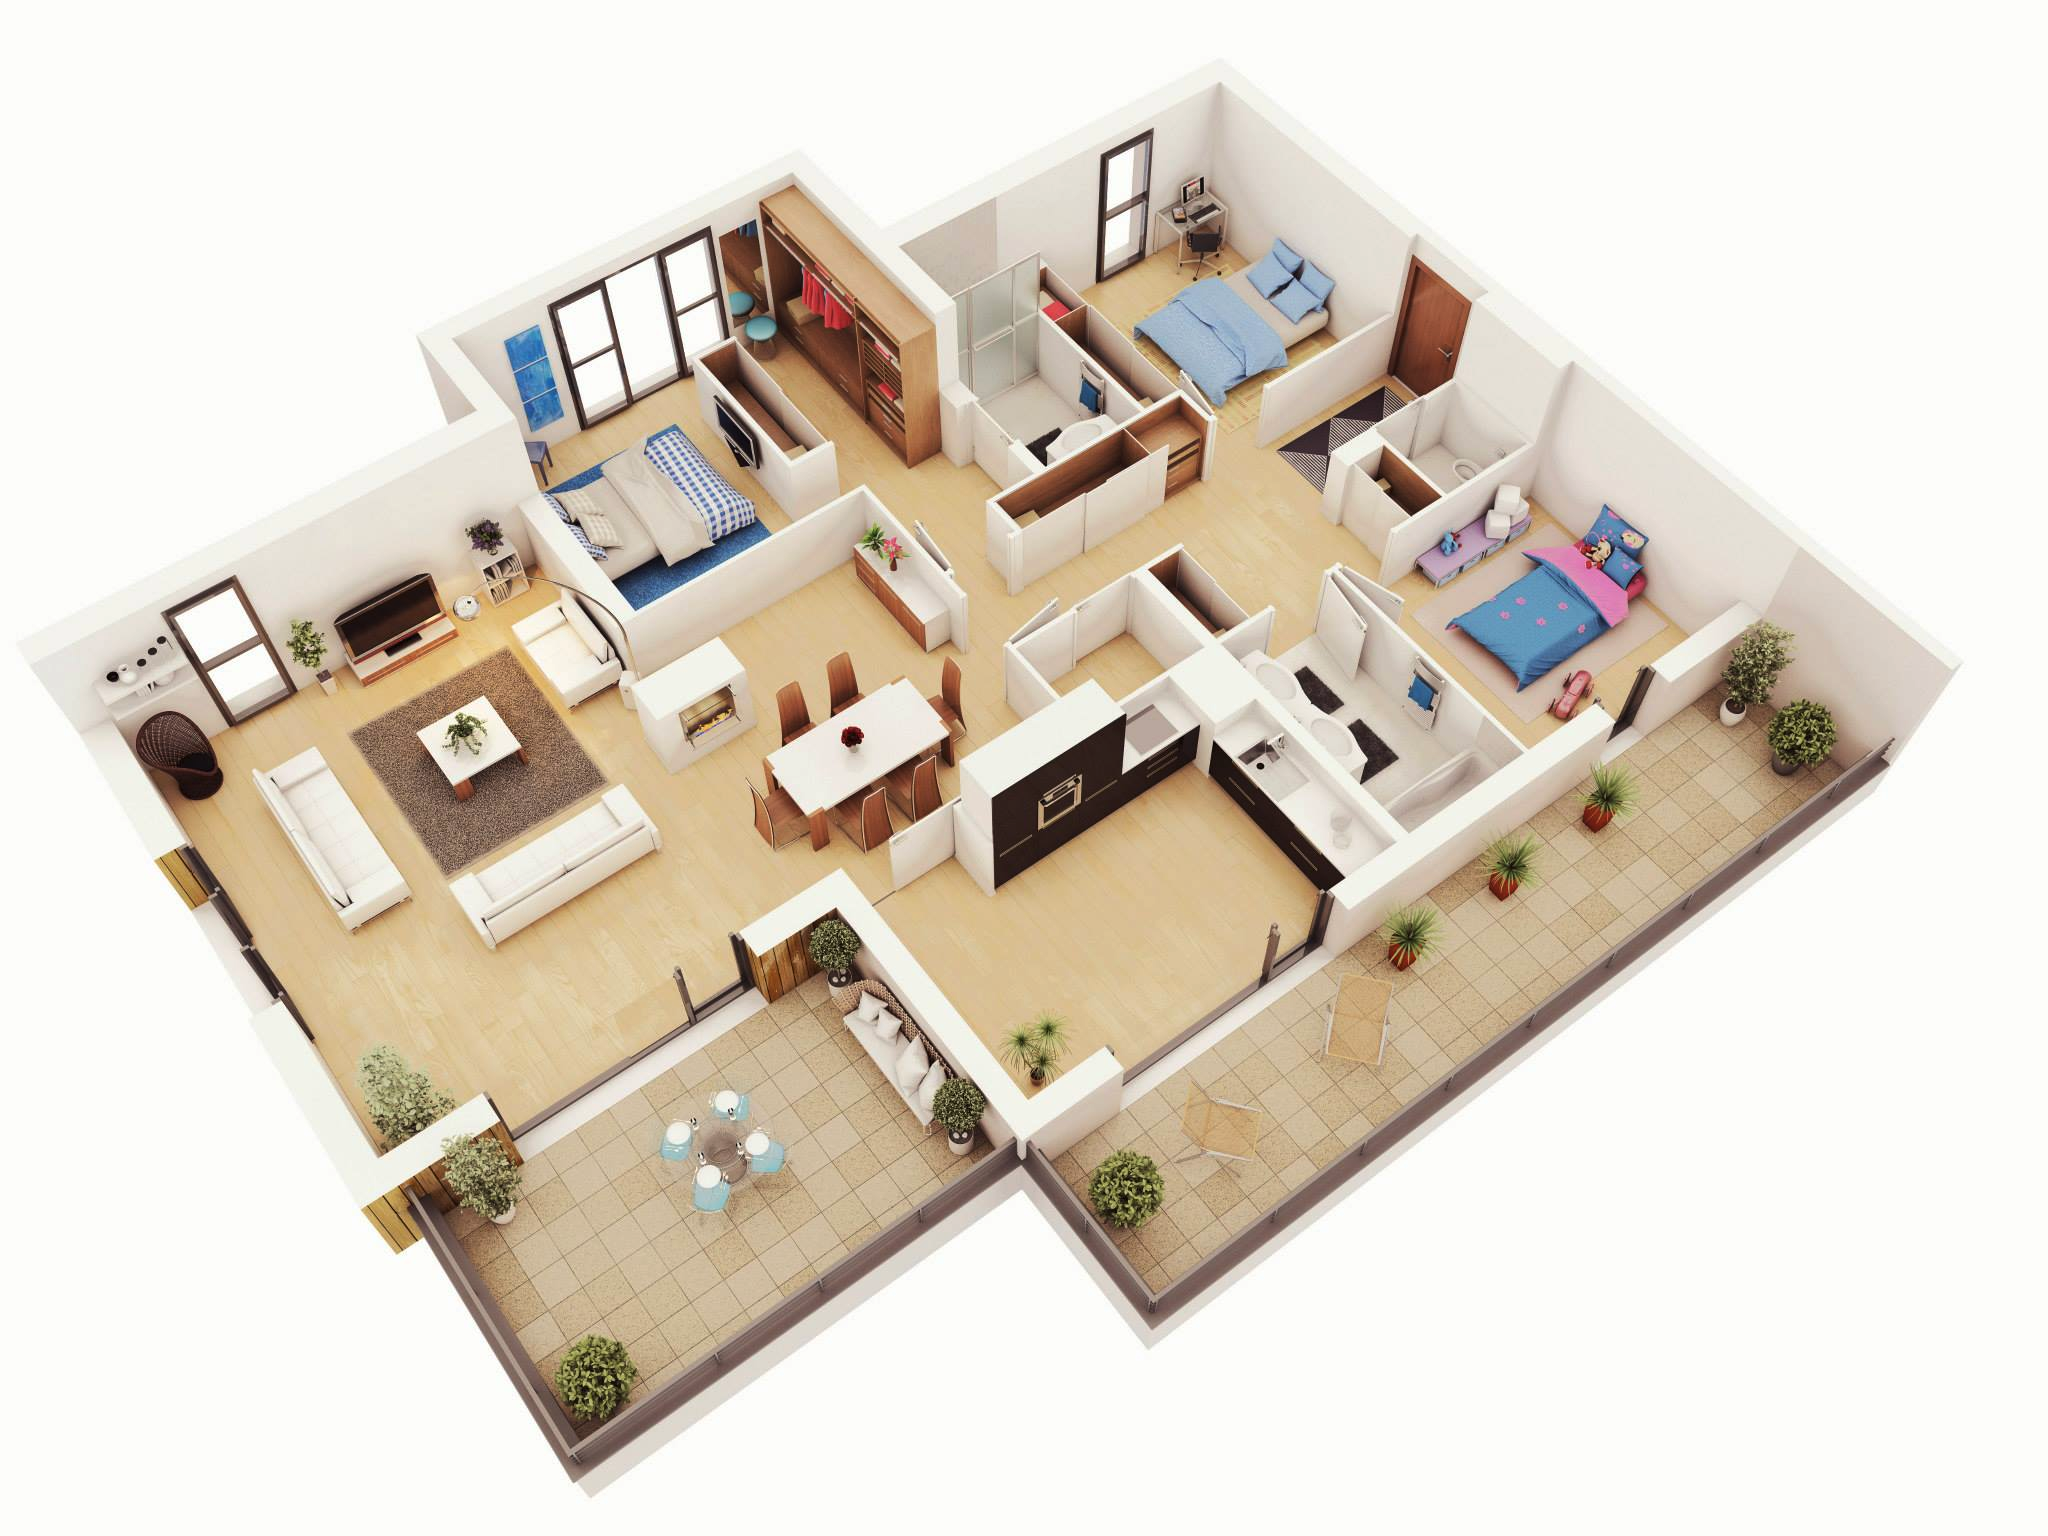 25 More 3 Bedroom 3d Floor Plans: 3 bedroom house plans with photos